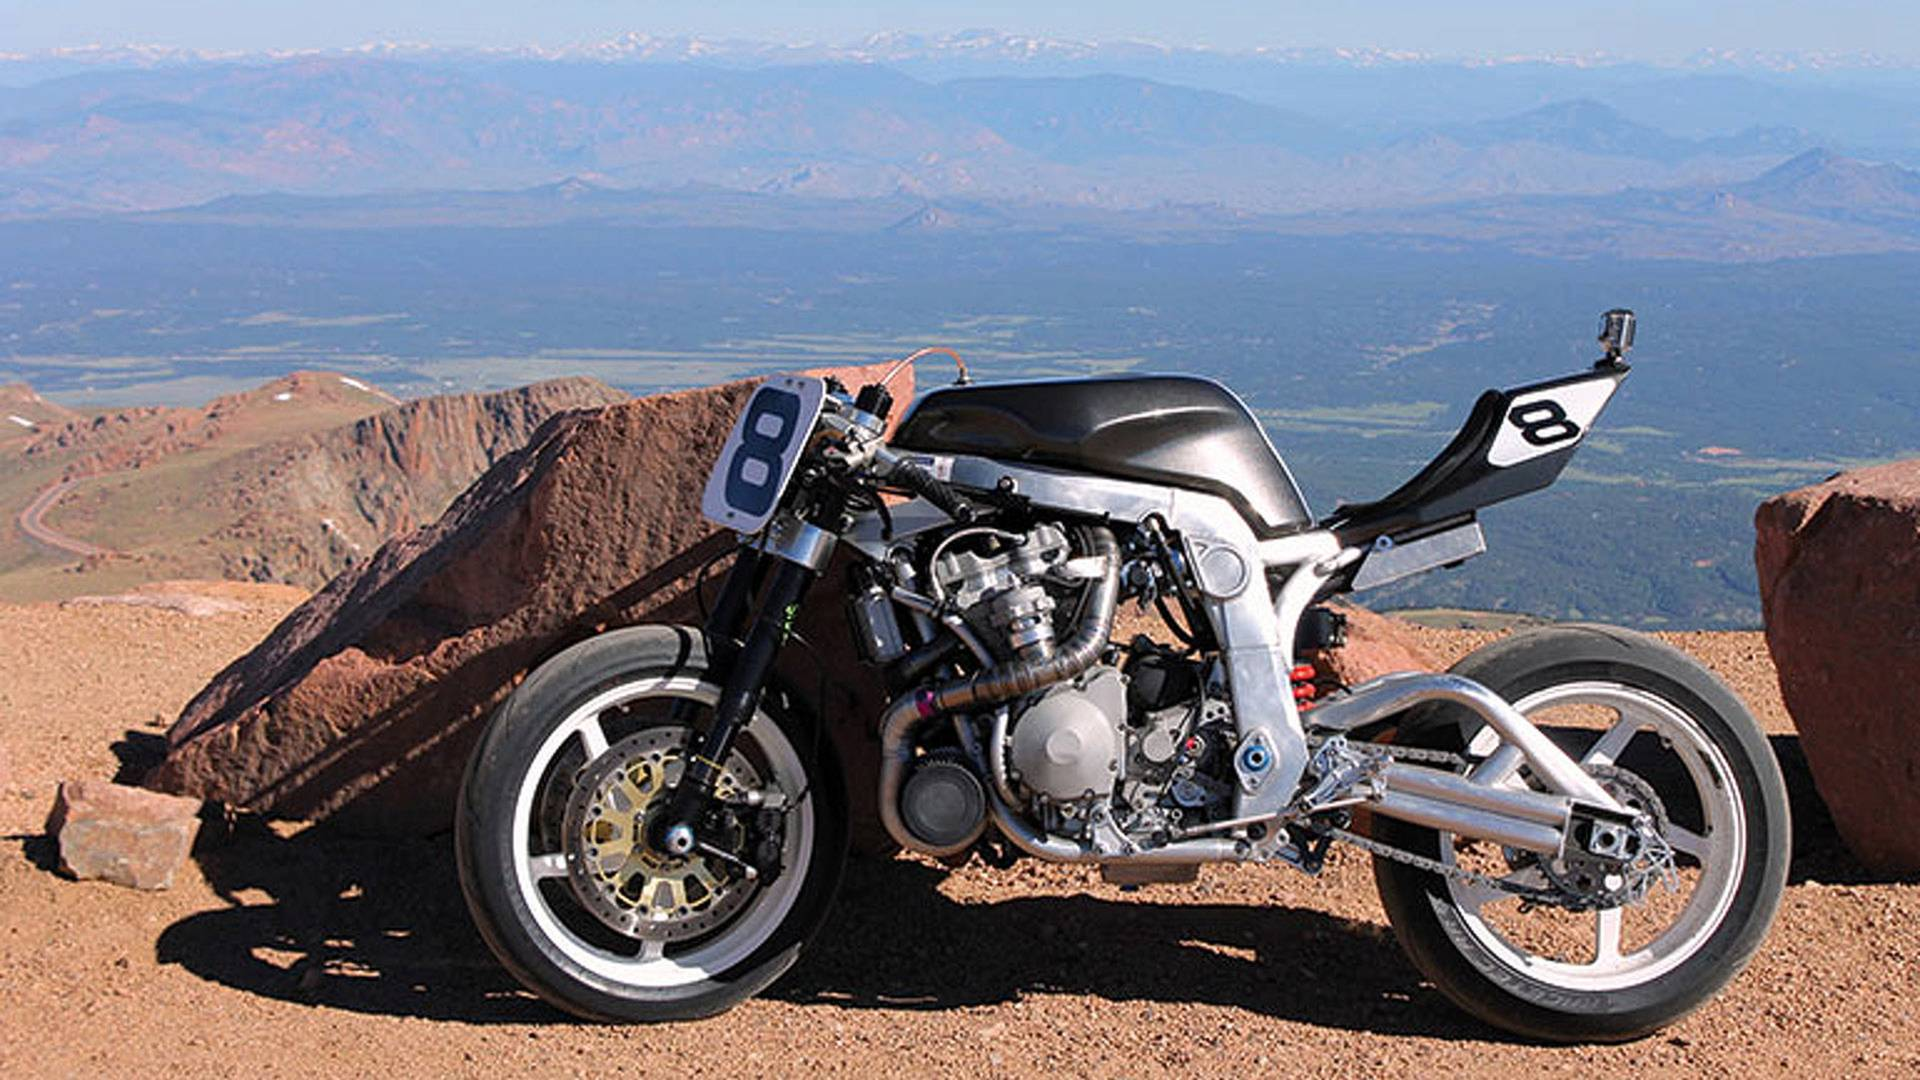 Motorcycles Could Be Banned From Pikes Peak Forever